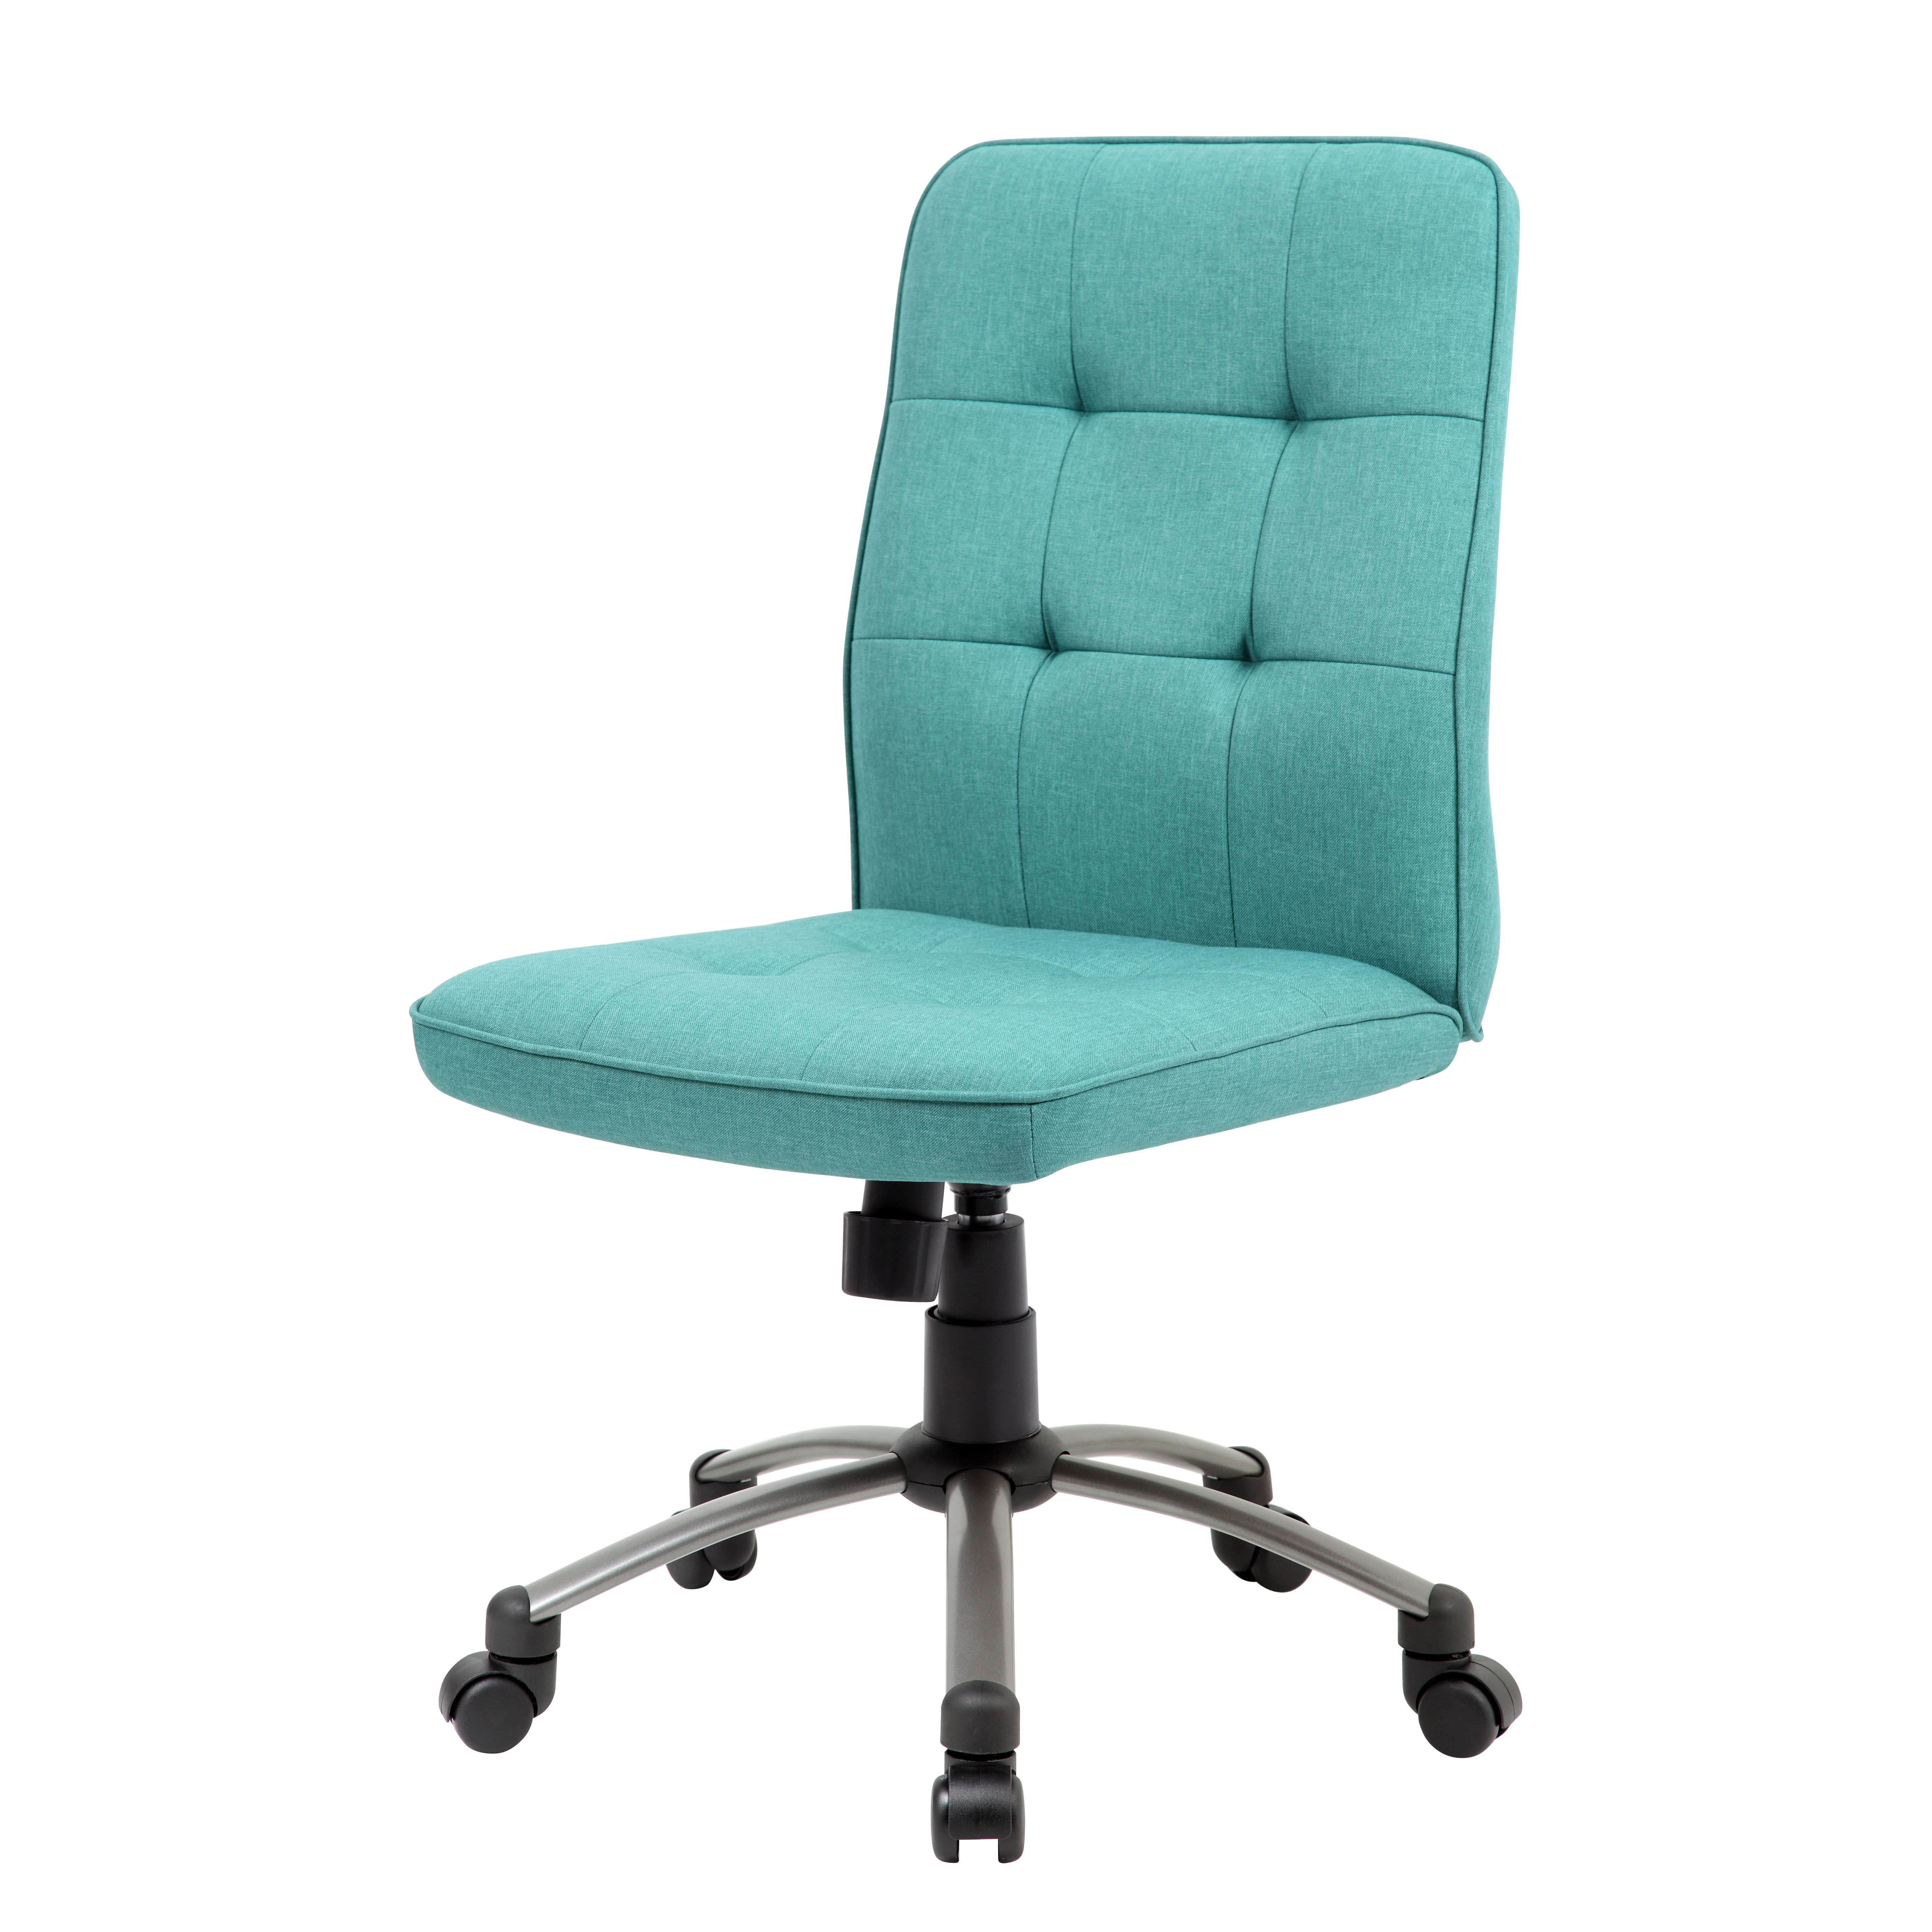 wayfair desk chairs evac chair accessories you ll love the shellman at great deals on all furniture products with free shipping most stuff even big